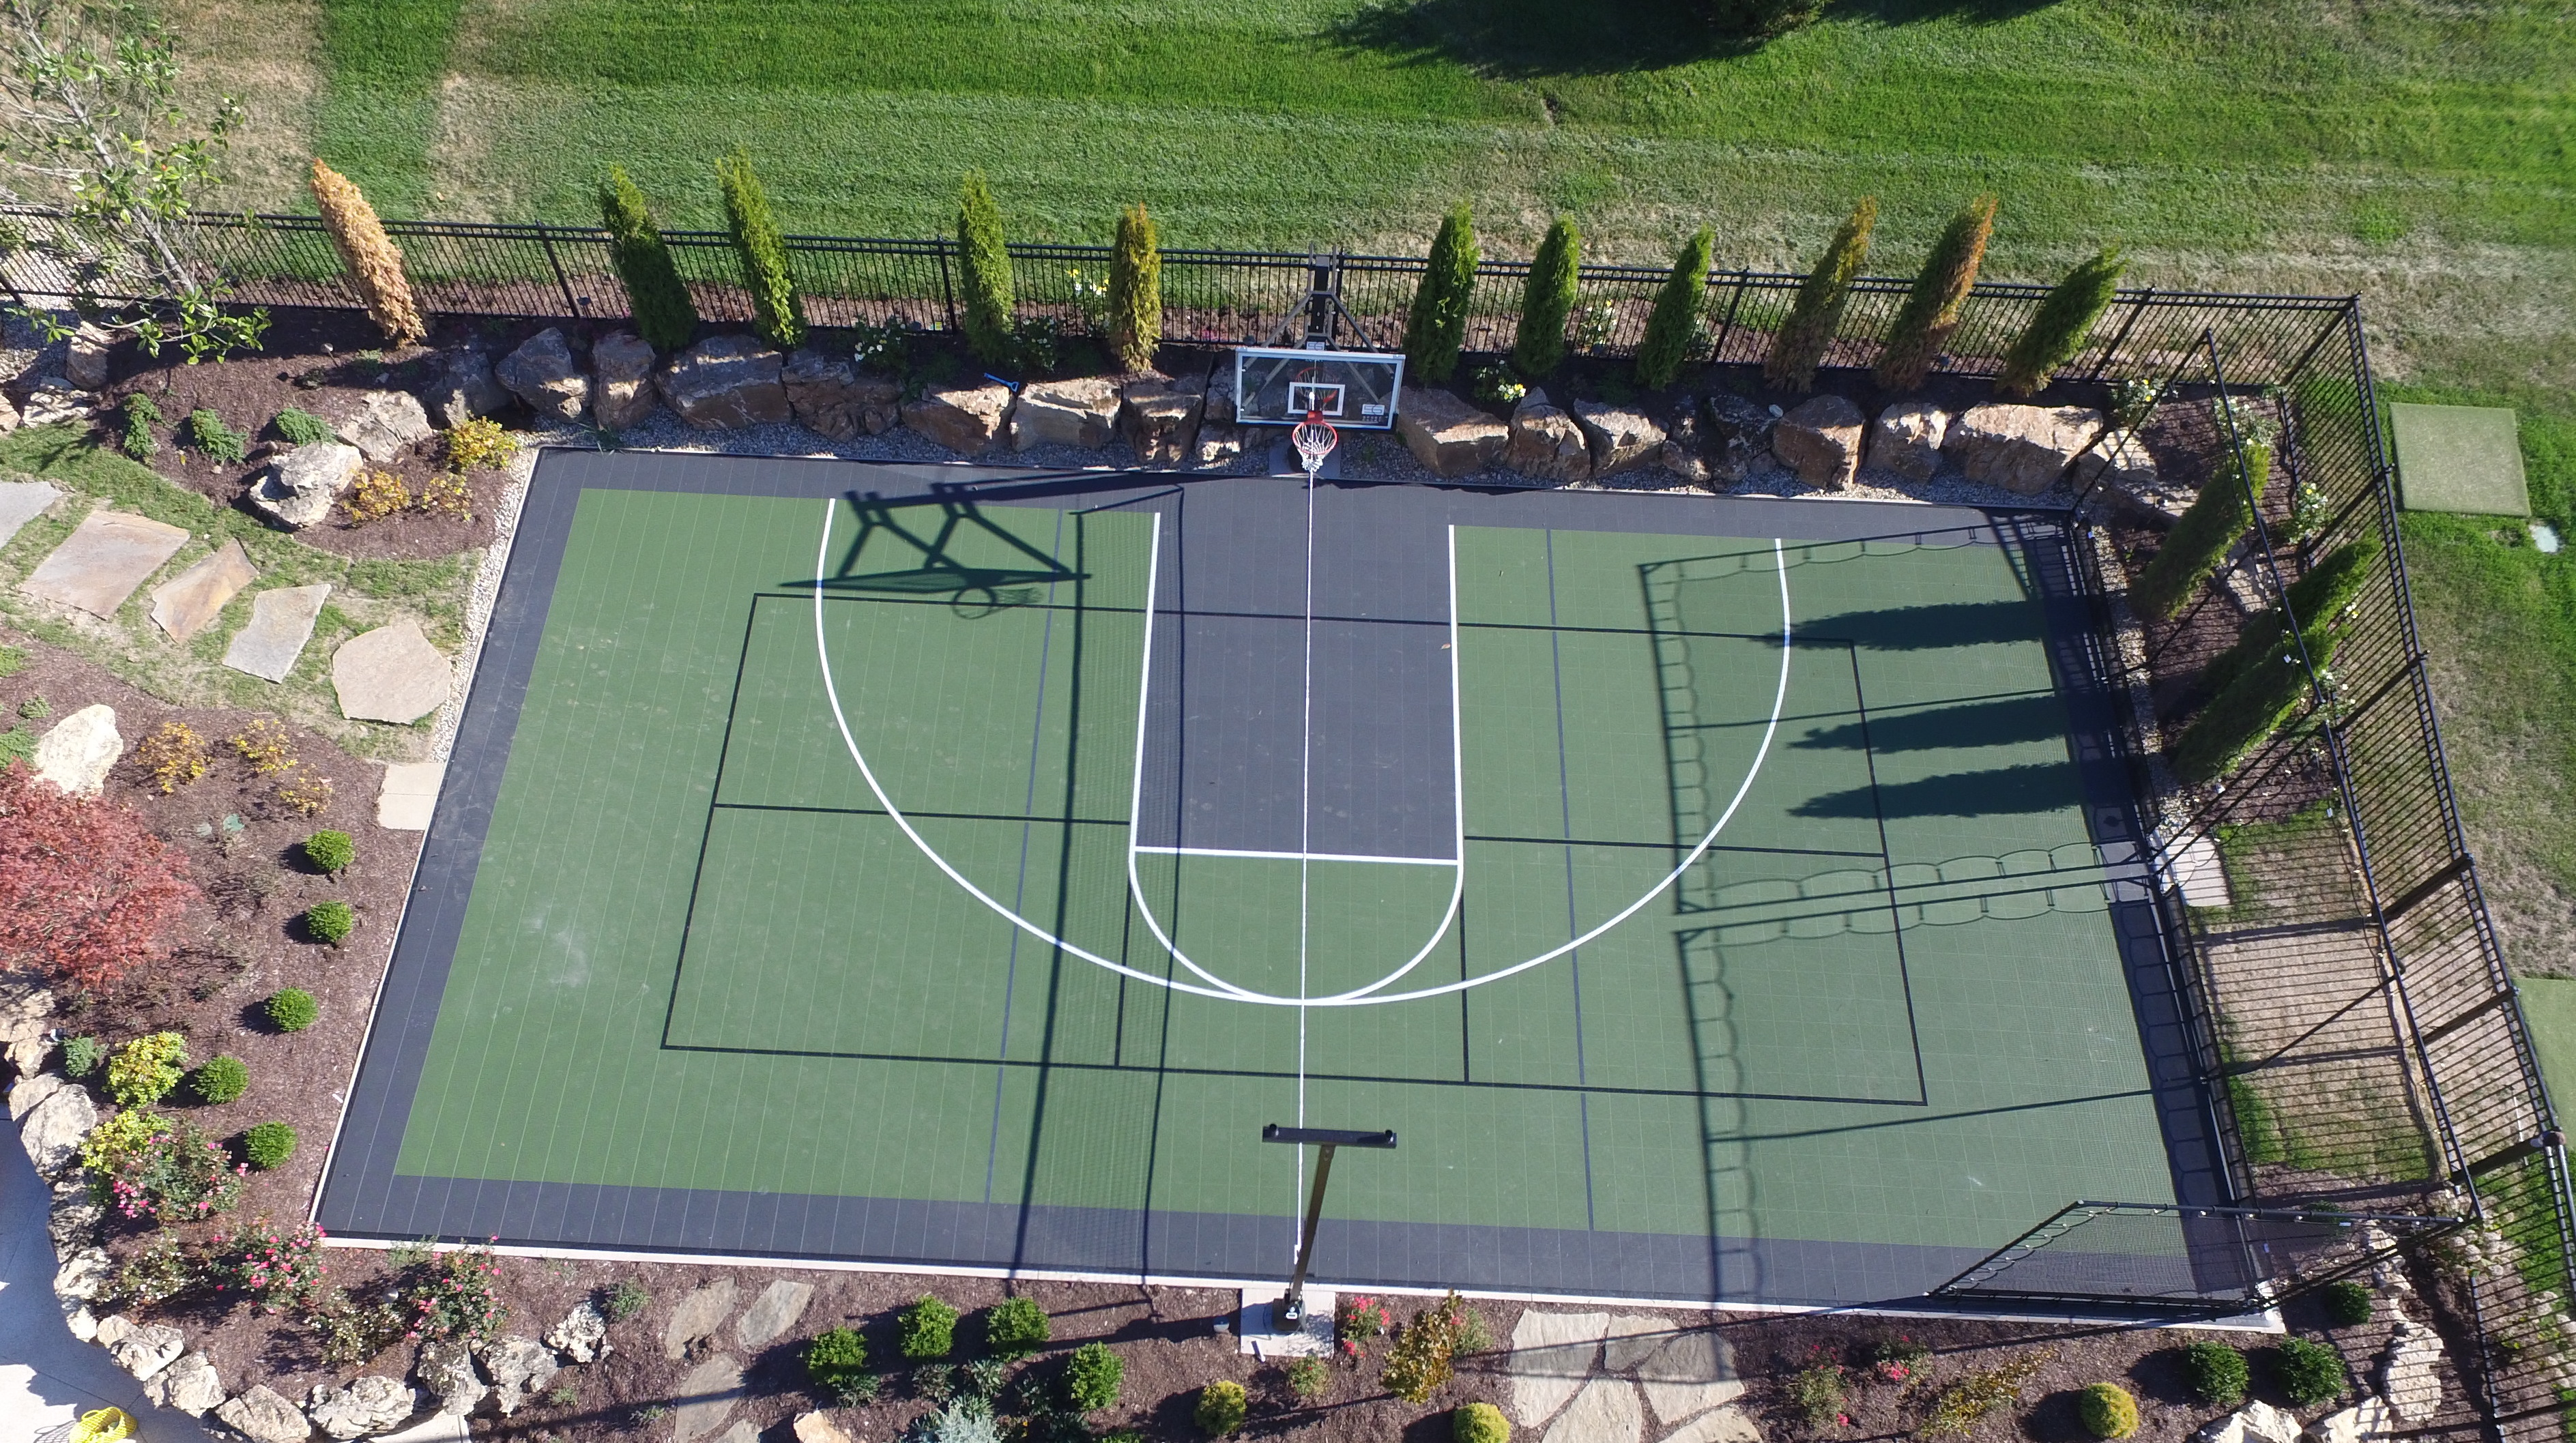 Why Choose a Sport Court Backyard Game Court Instead of a Pool?